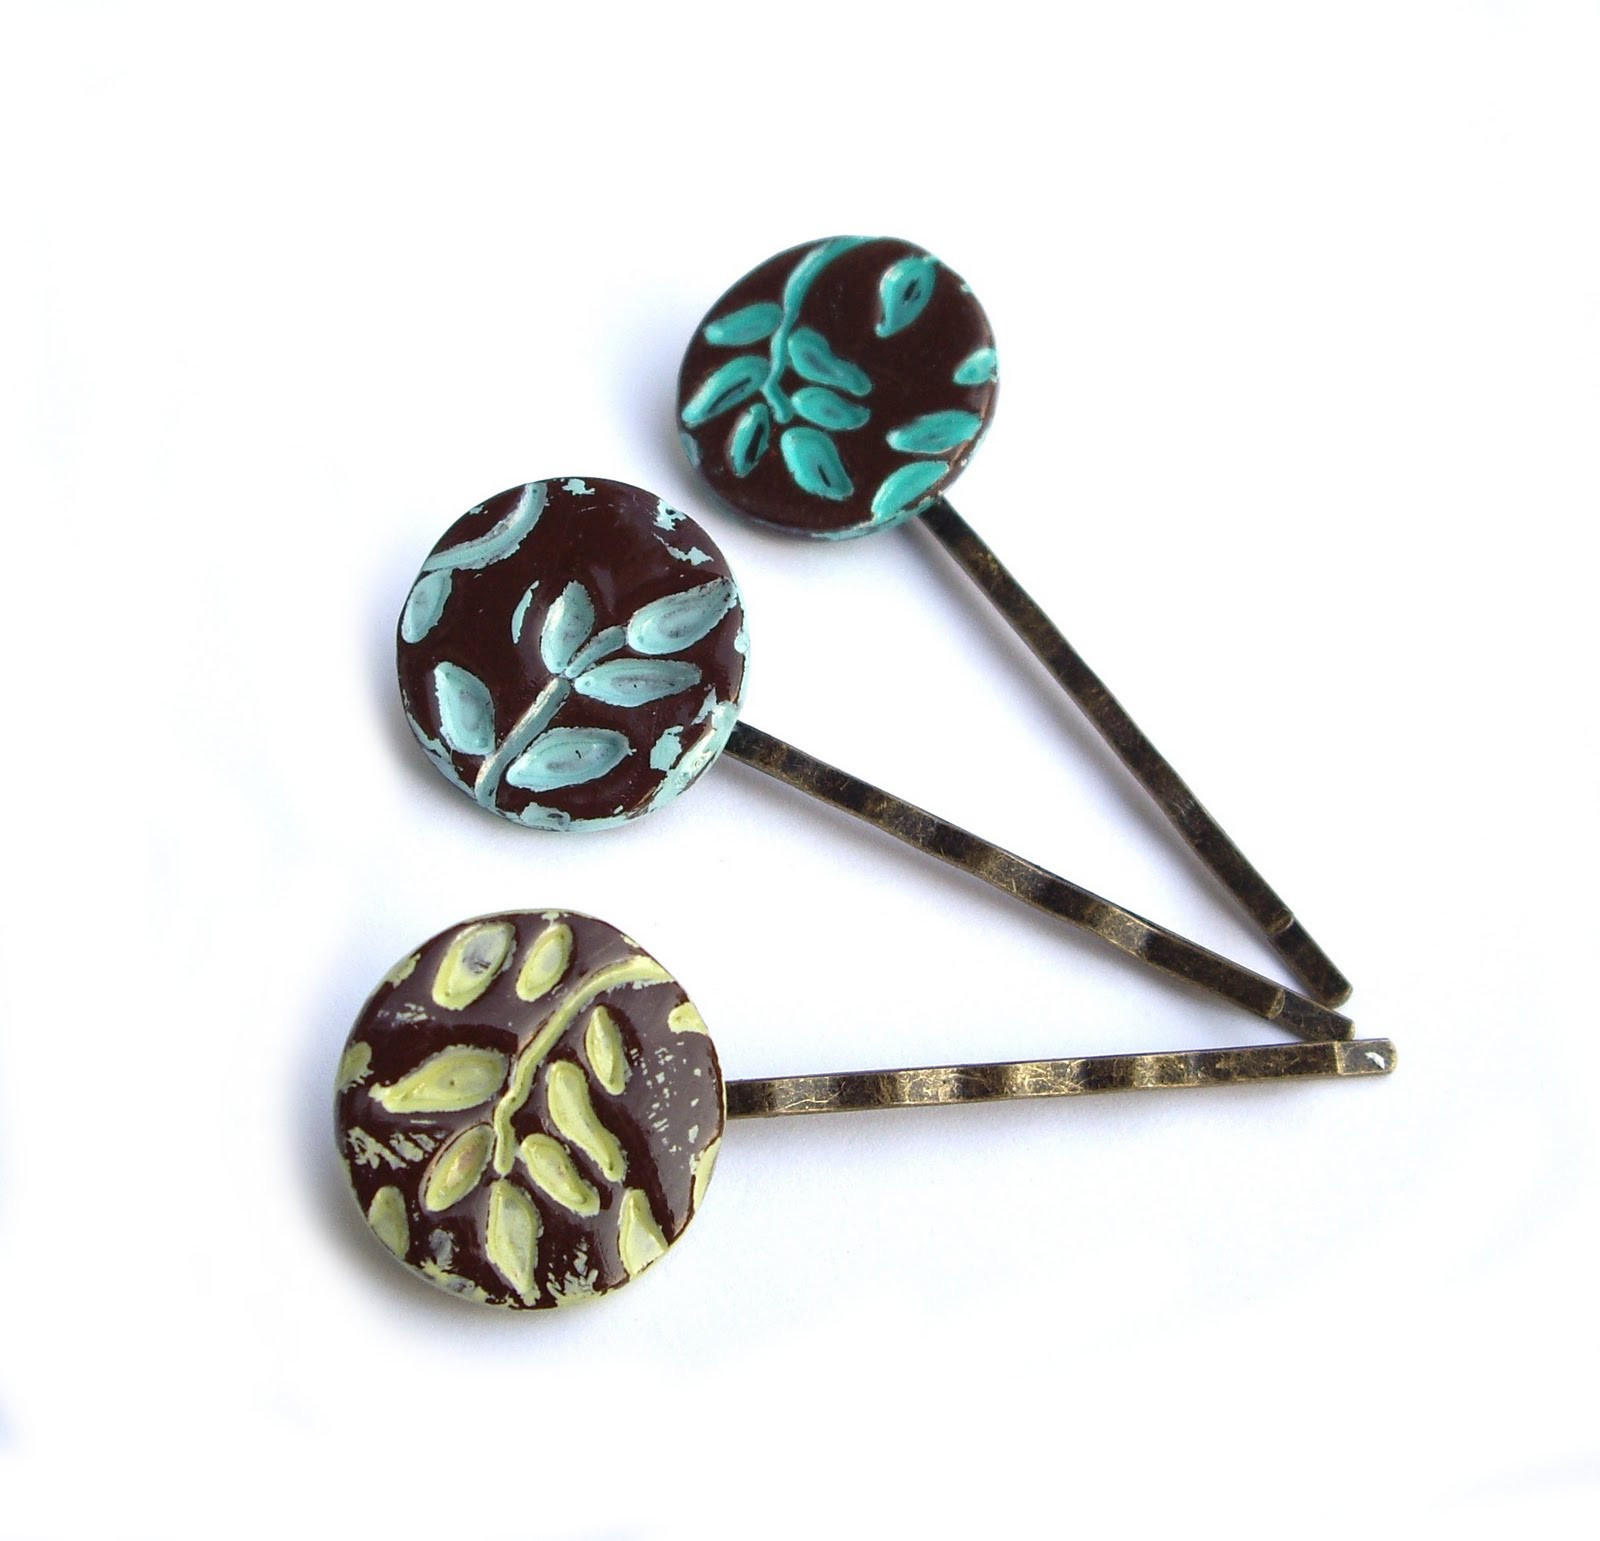 Clay Pins  JP with love Jewelry And Hair Accessories Blog HAIR PINS